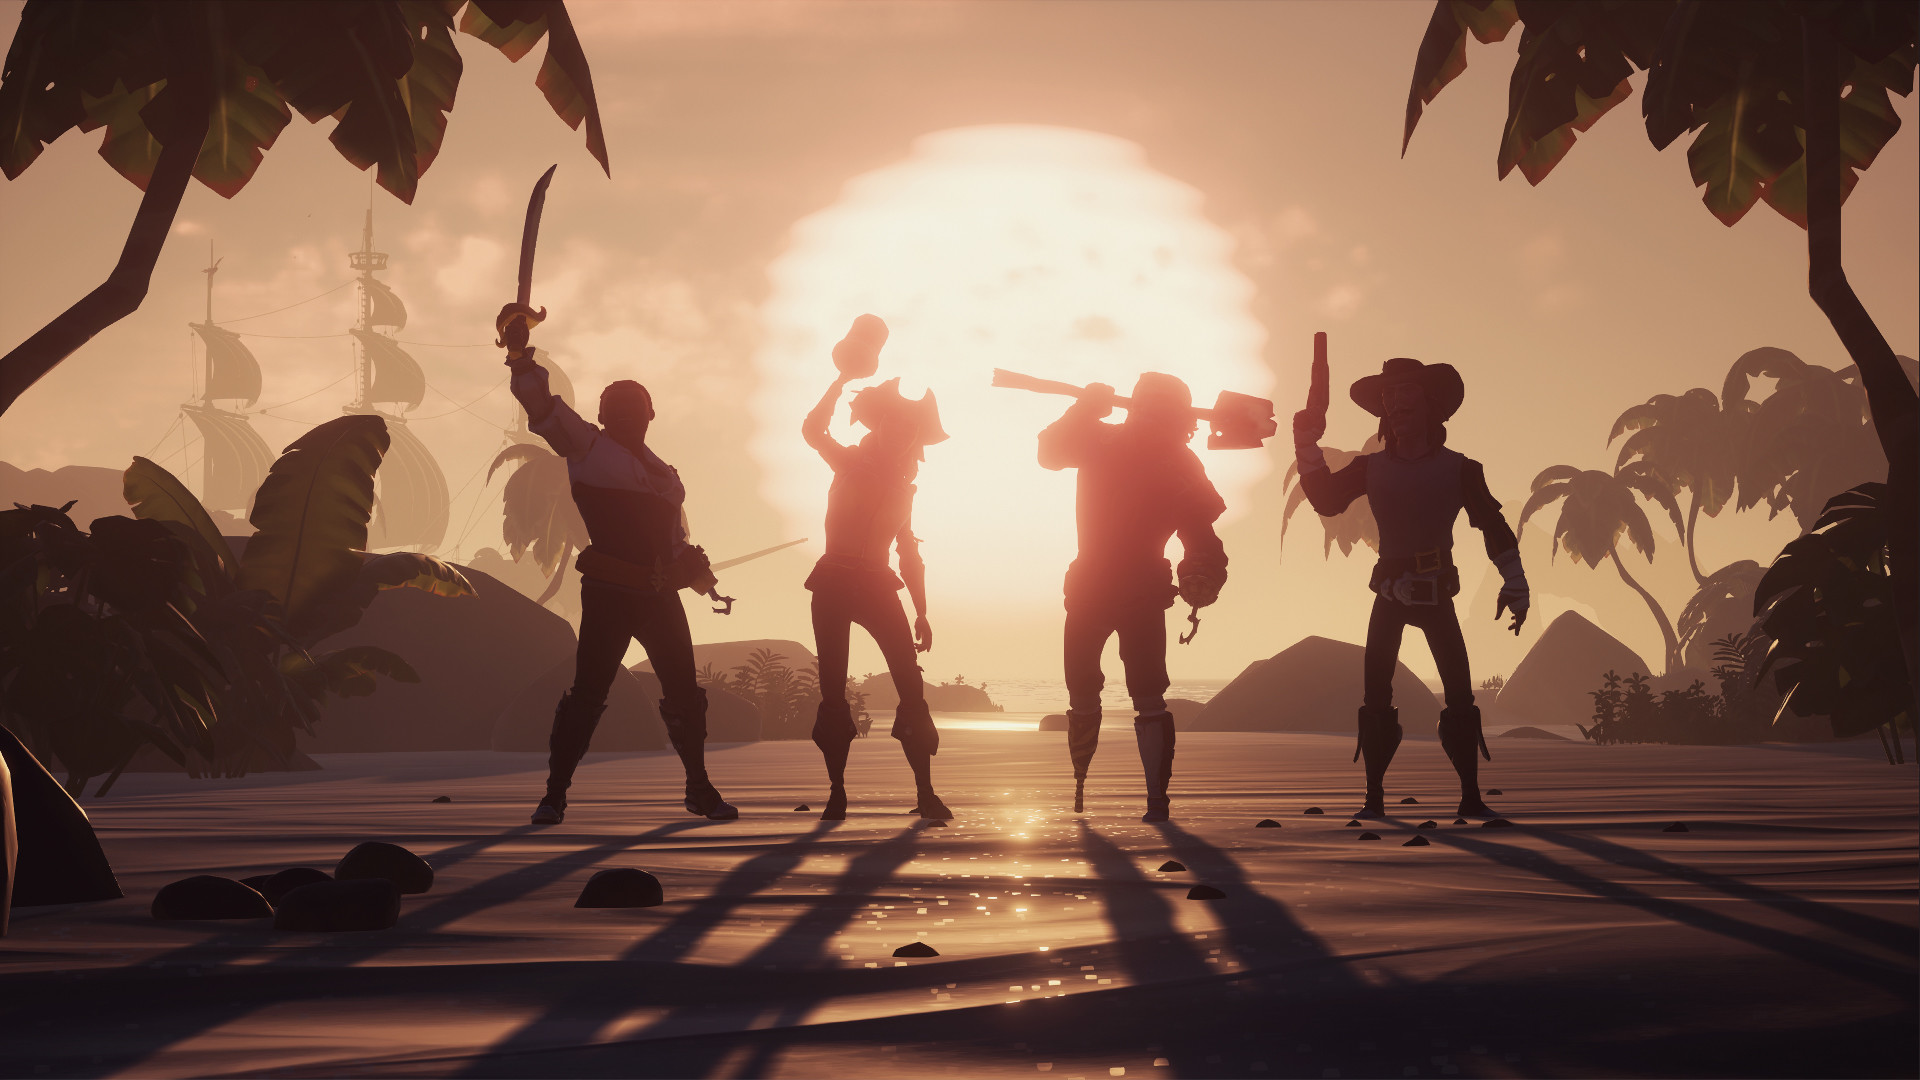 Sail-the-high-seas-with-Sea-of-Thieves-on-Steam-now-1.jpg